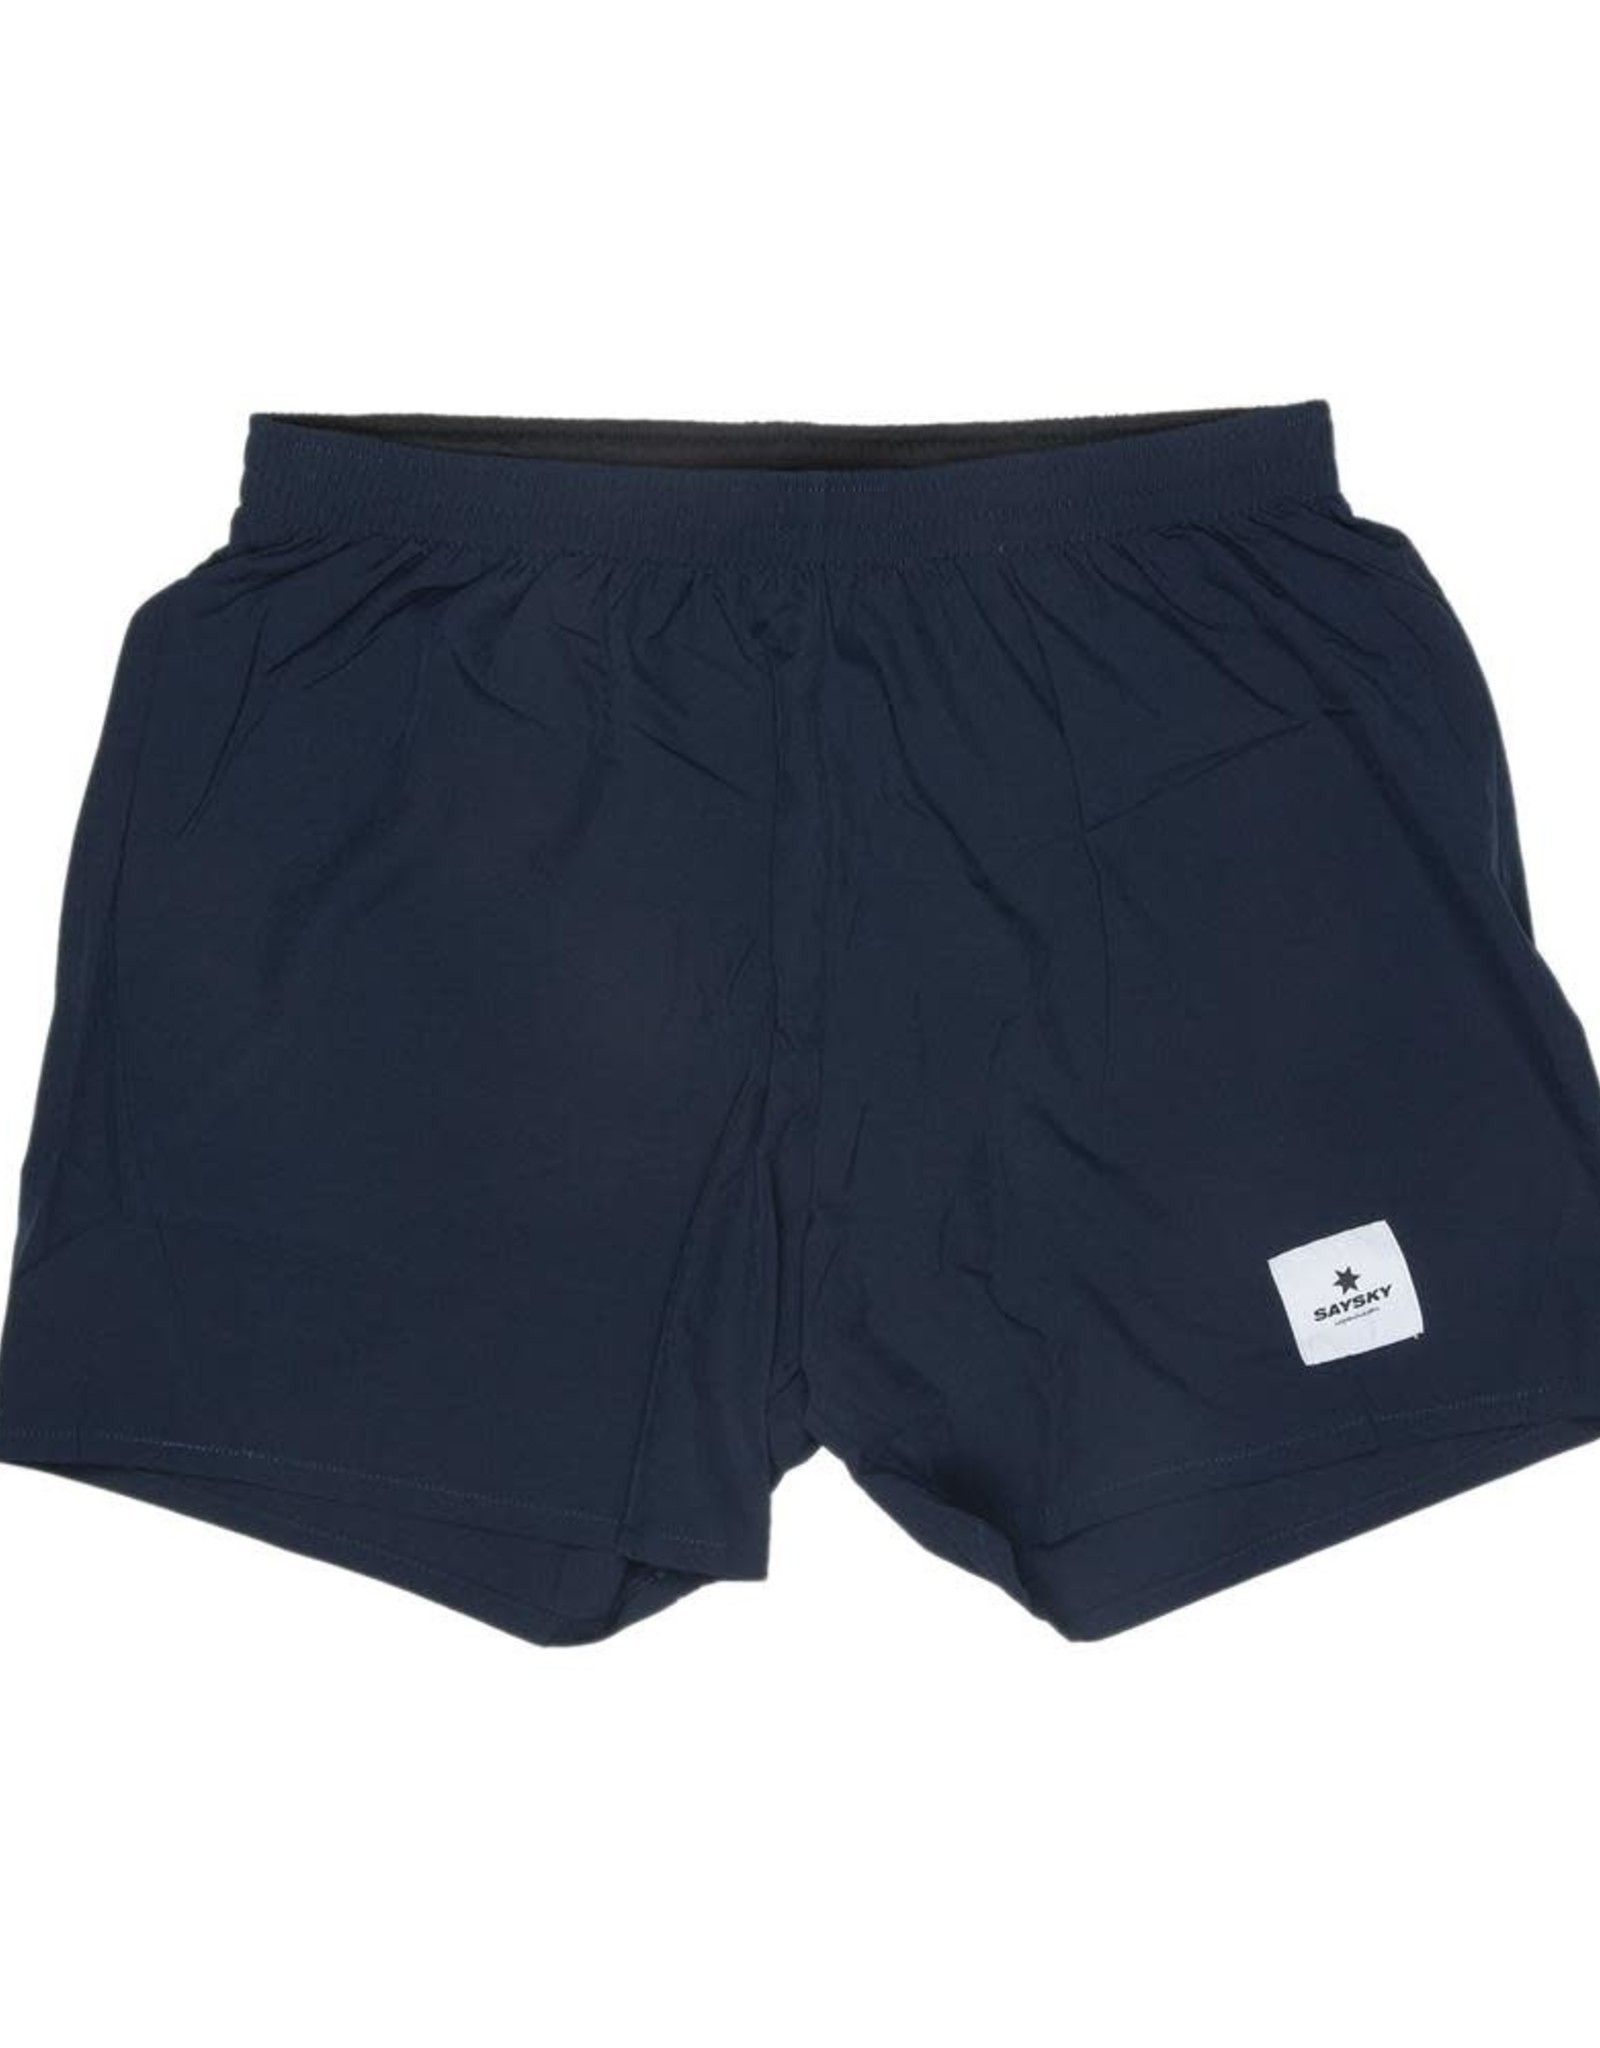 Saysky AMRSH3 Pace shorts